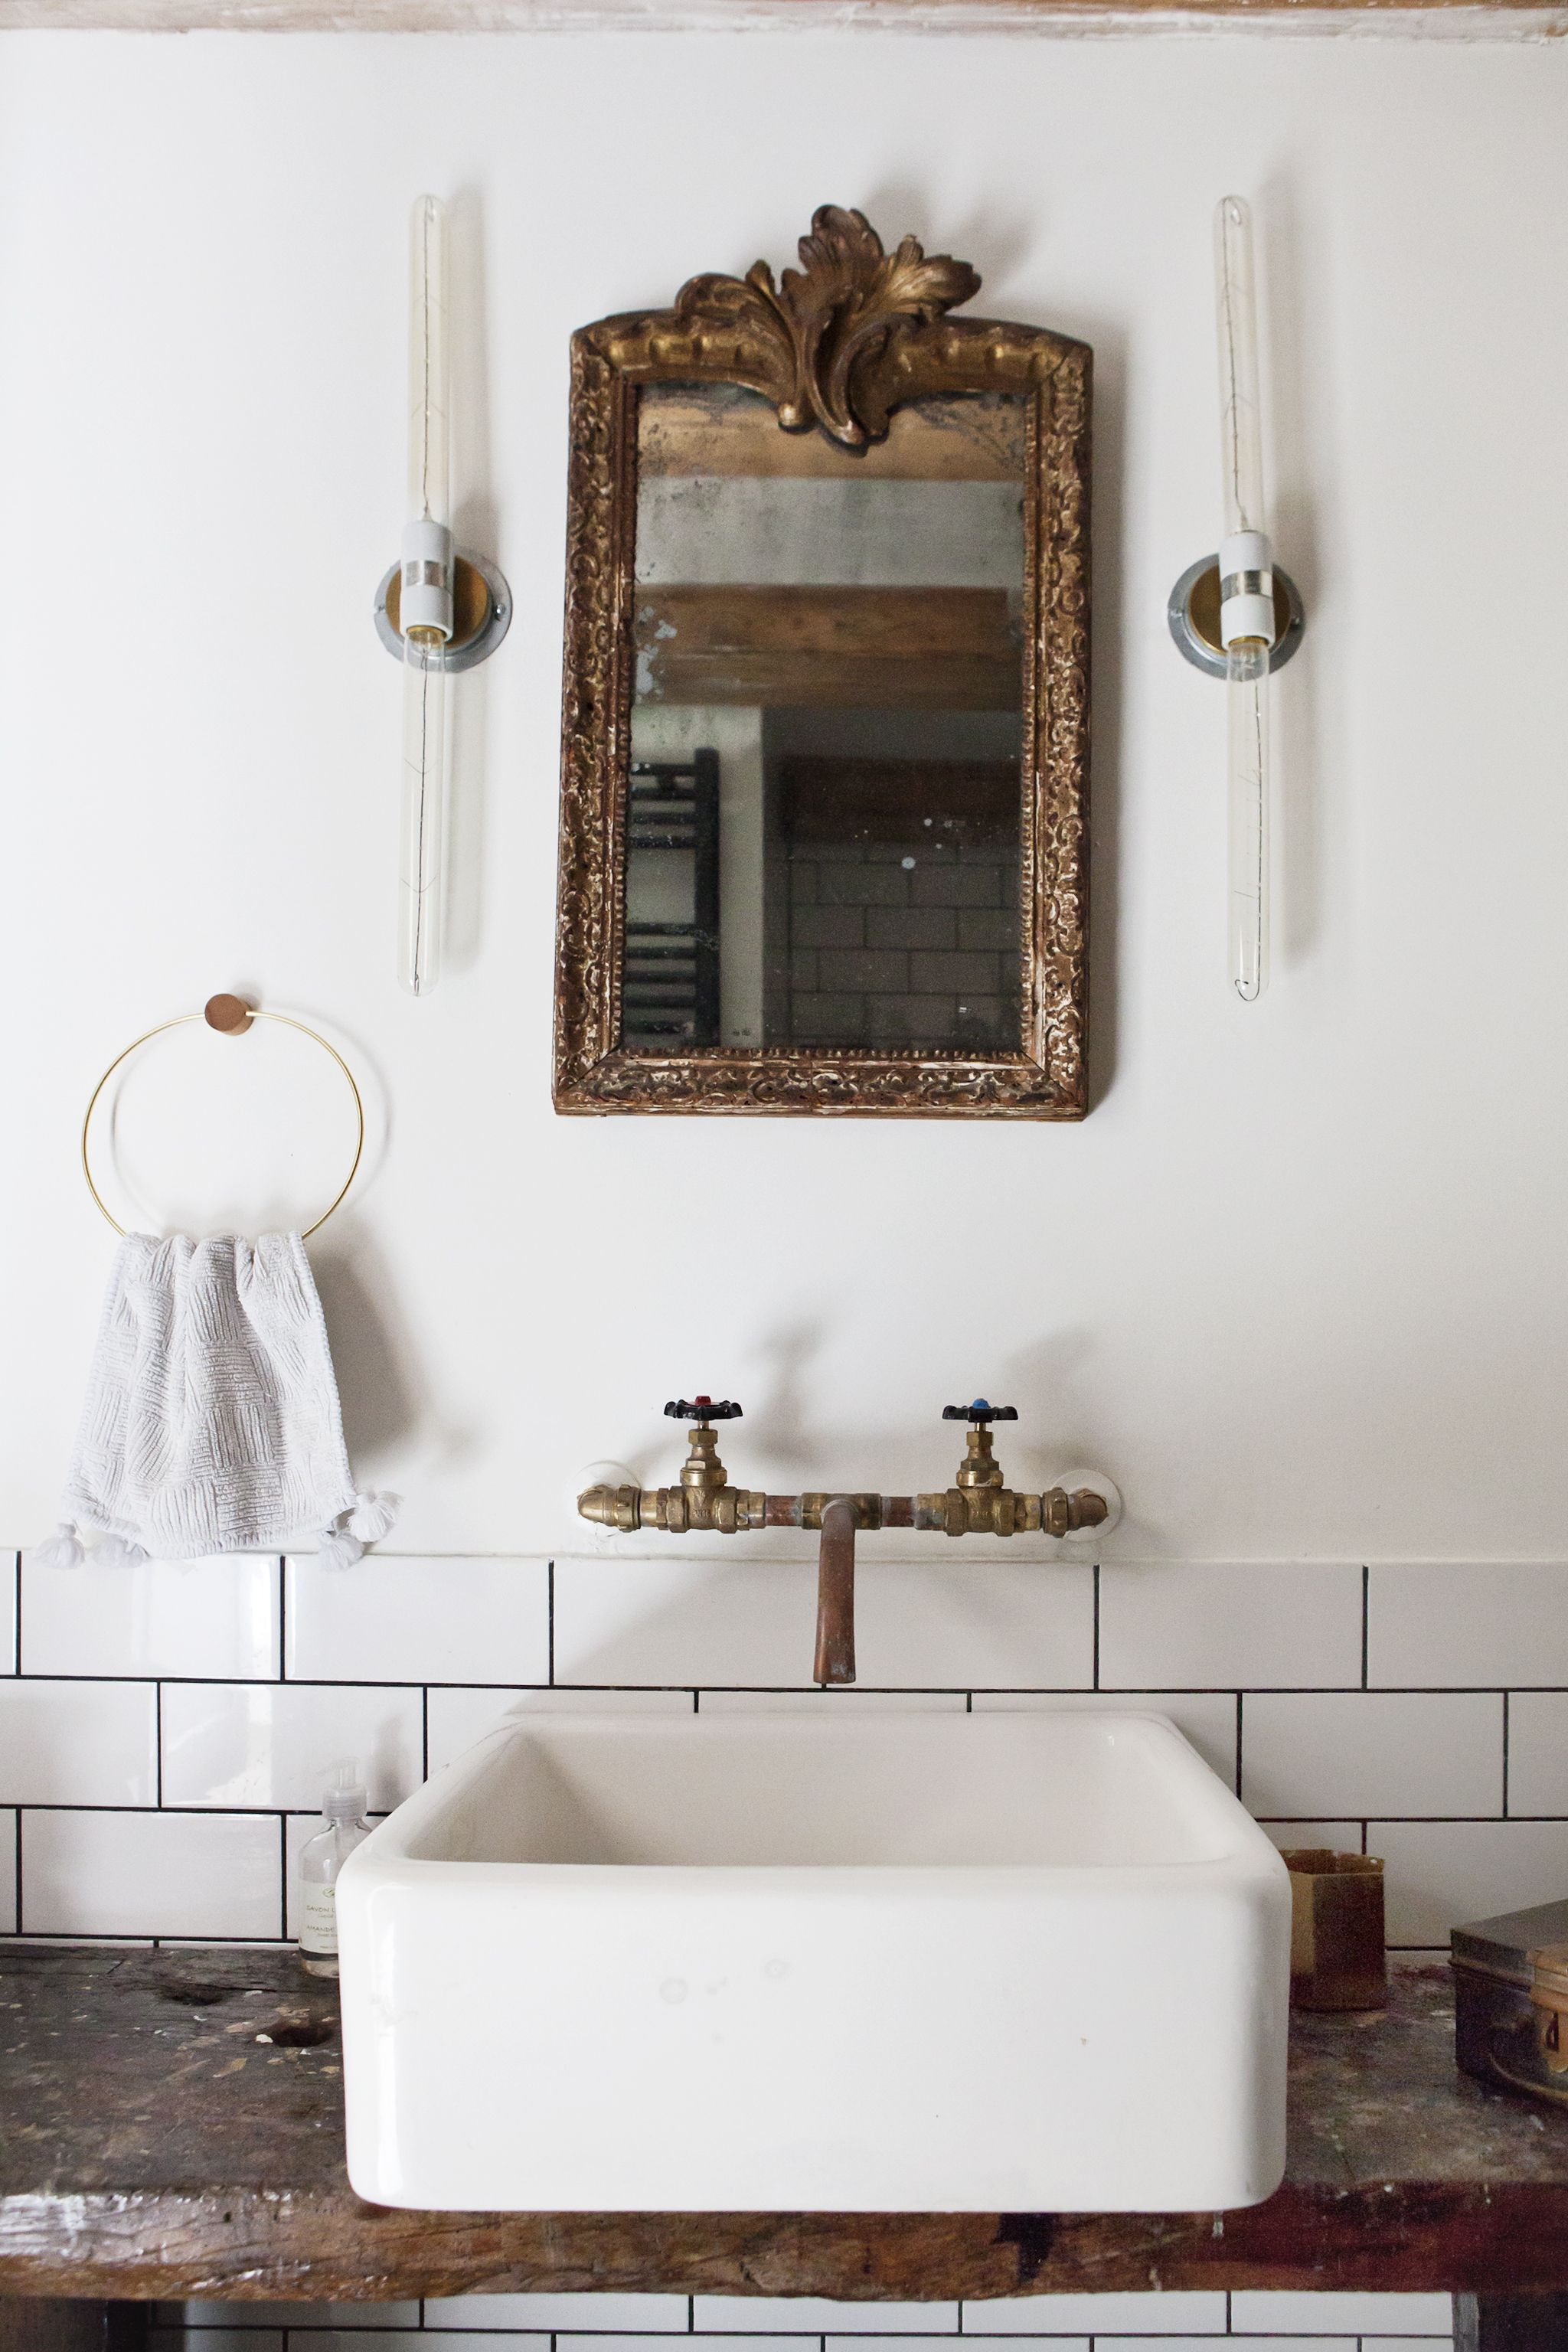 New Antique Style Bathroom Cabinet